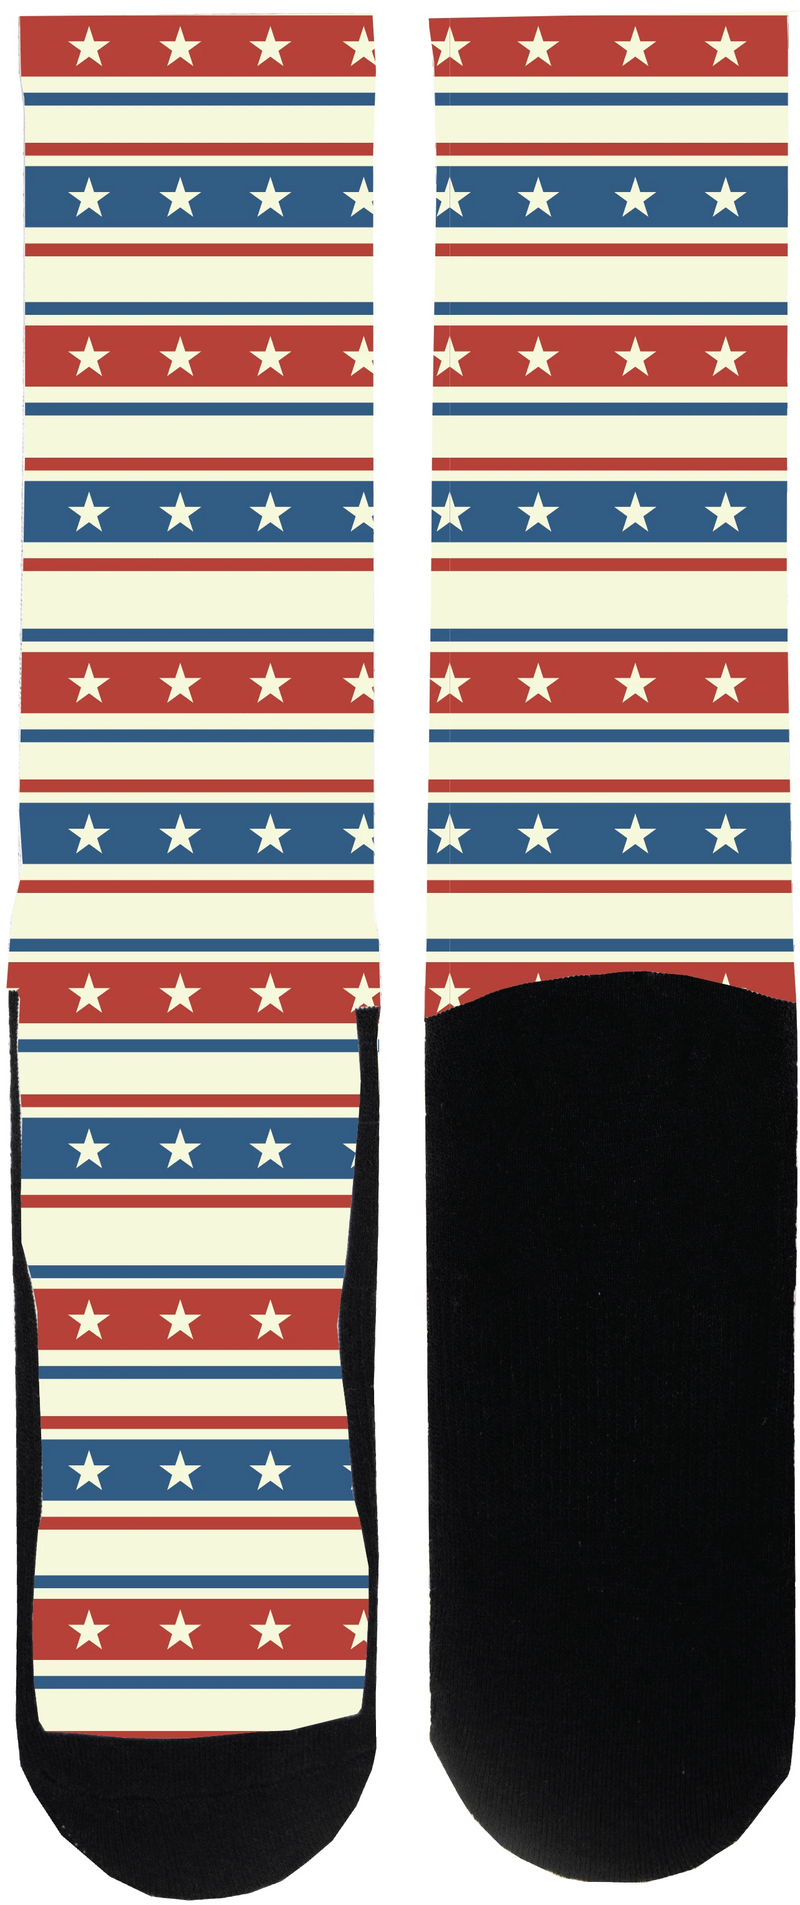 Merica Sock - Tough Tie